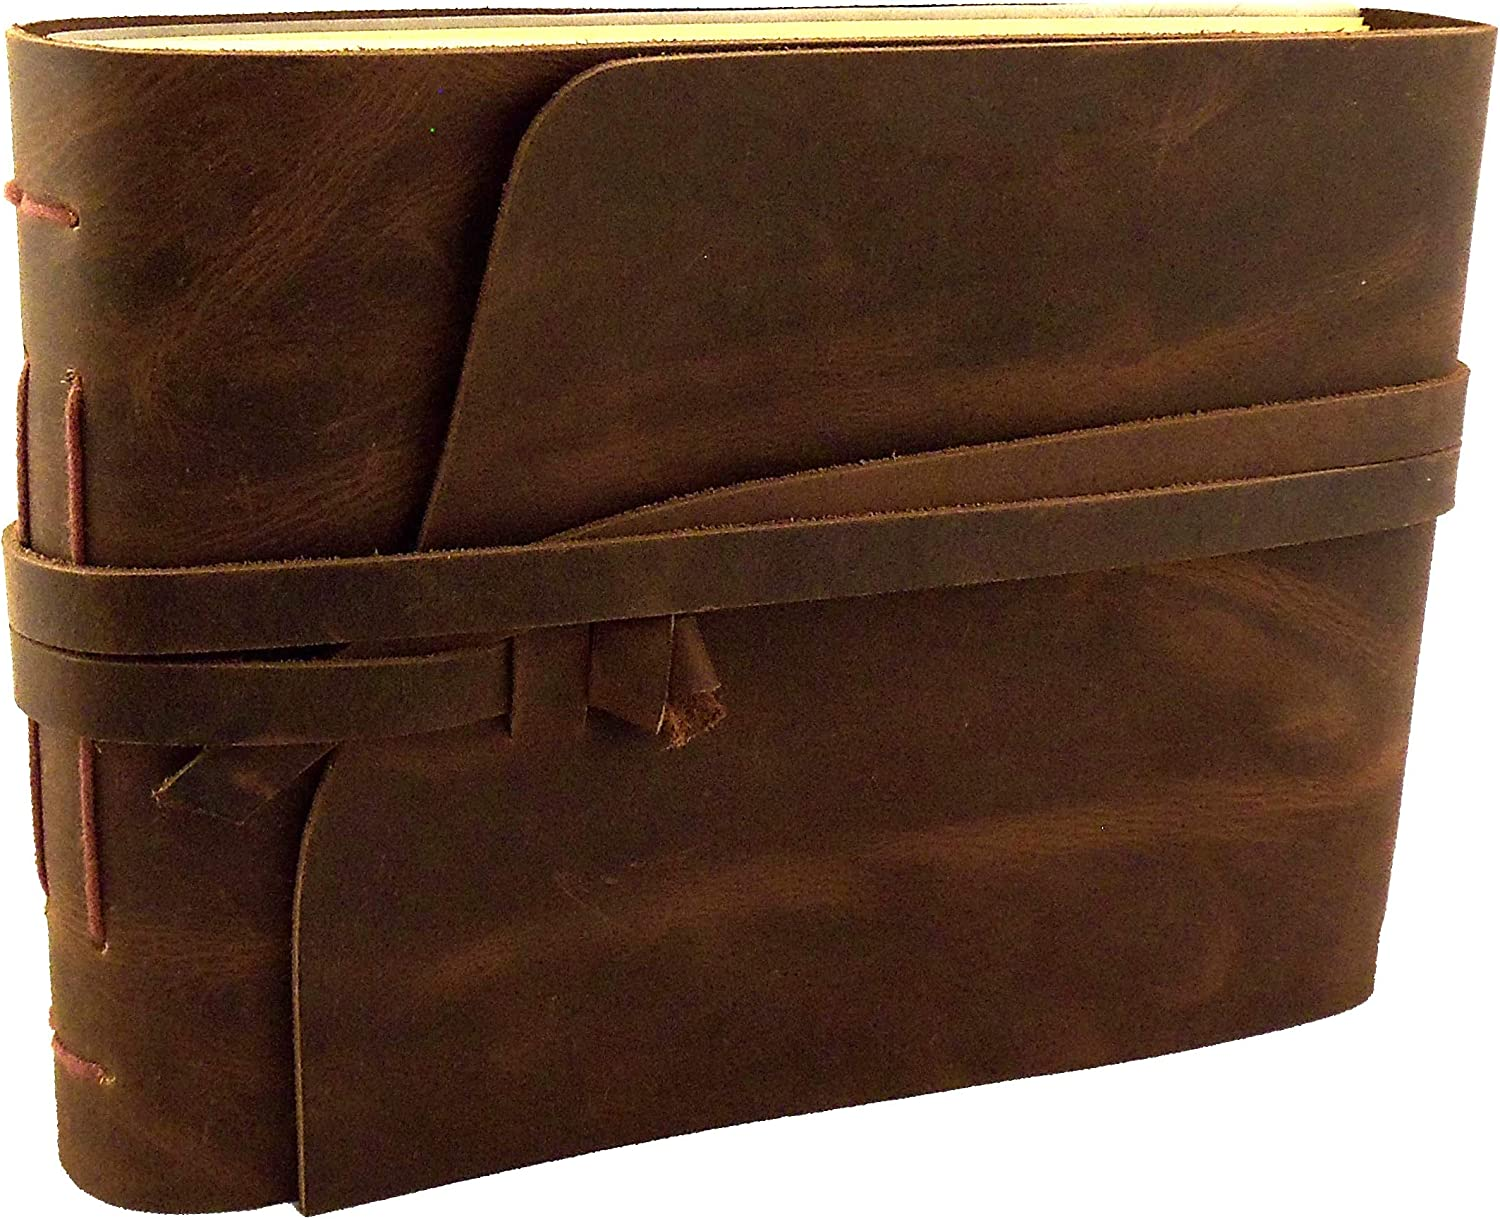 Rustic Genuine Leather Scrapbook Photo Album with Gift Box - Scrapbook Style Pages - Holds 100 4x6 or 5x7 Photos - Memory Book